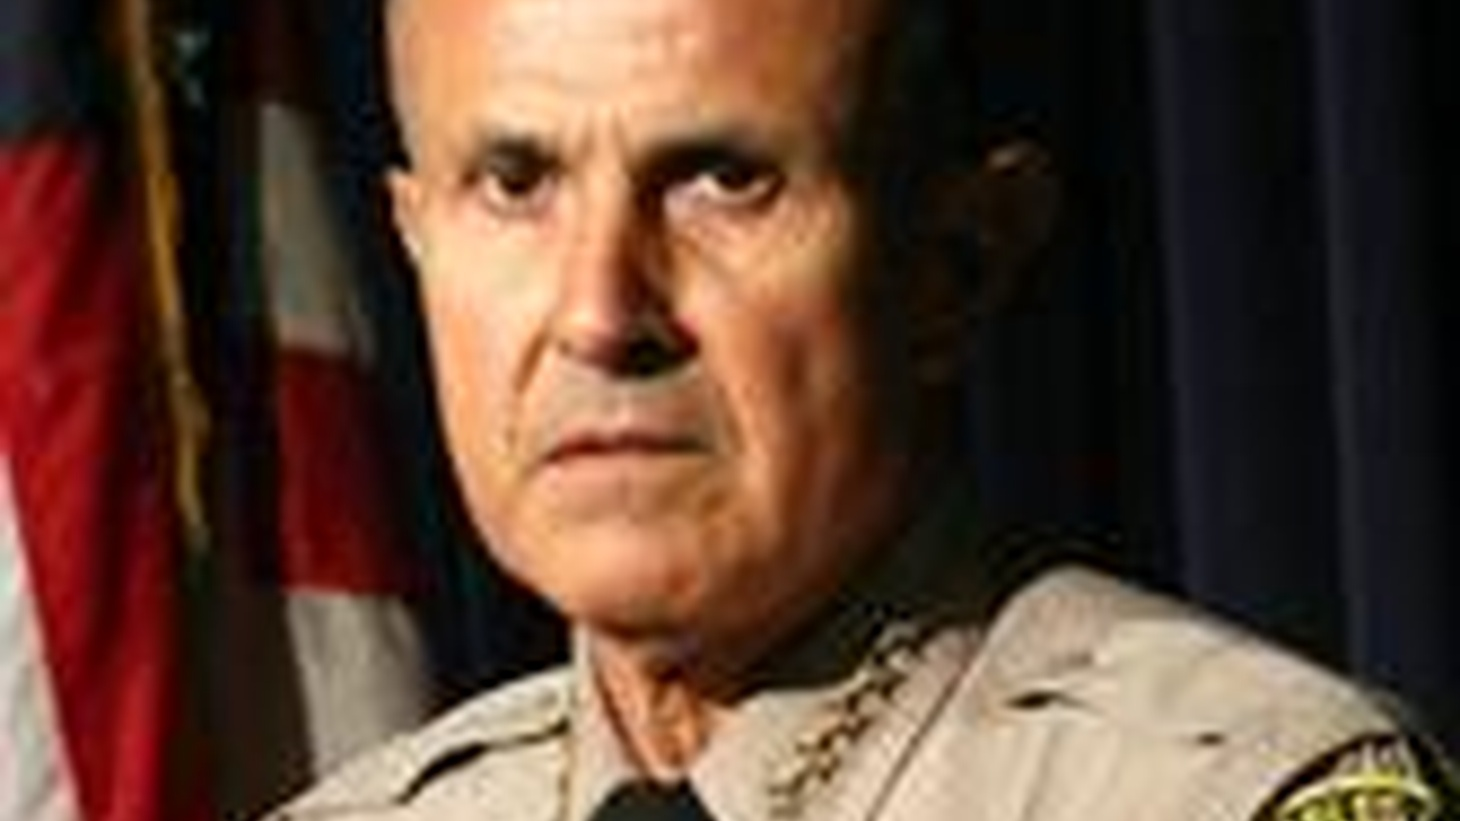 Today LA County Supervisors gave Sheriff Lee Baca a week to report back on the Paris Hilton debacle - they want to know if her early release amounted to special celebrity treatment. However, a lot of other questions need to be answered.